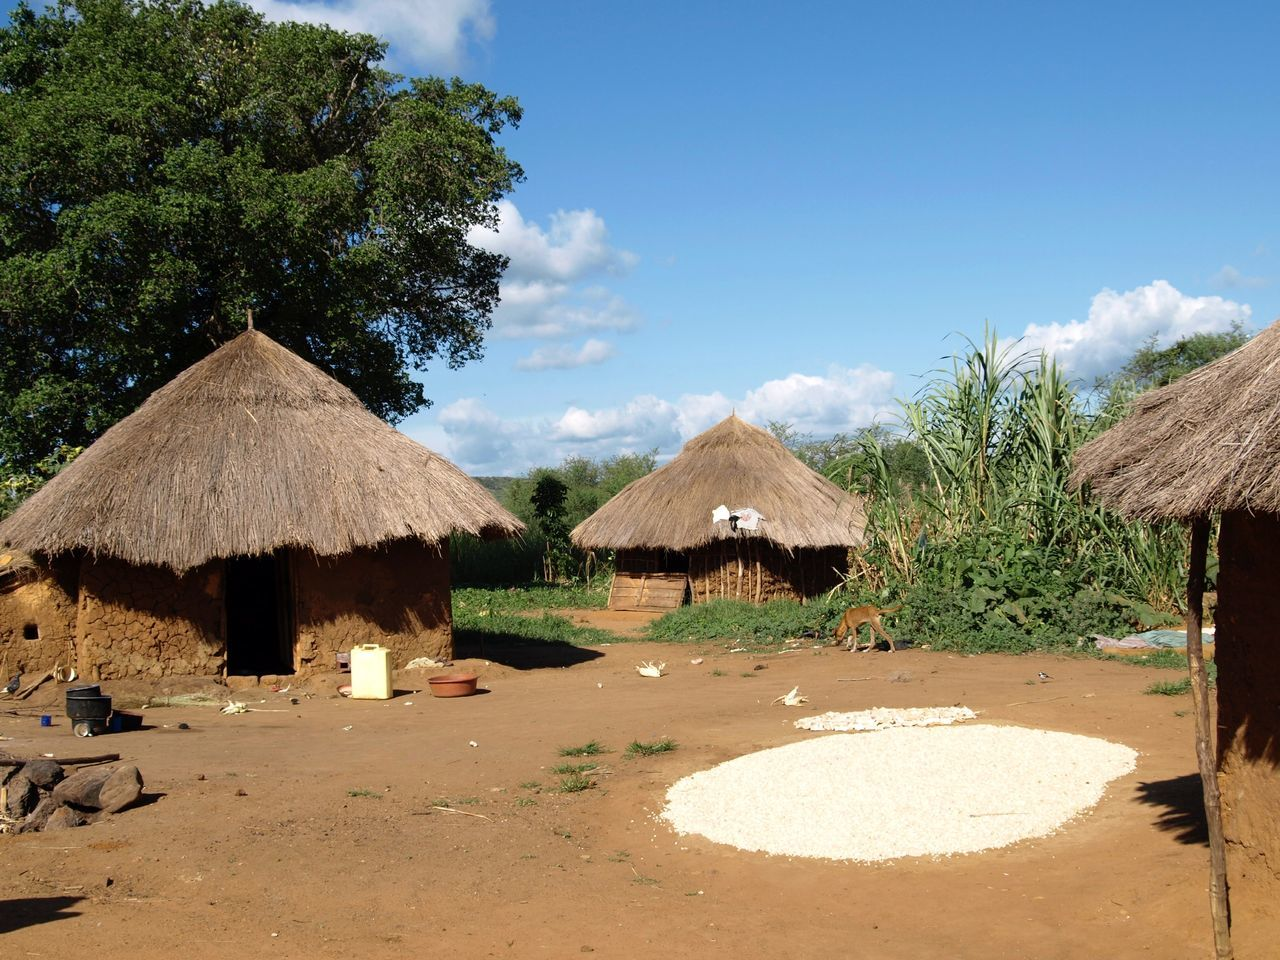 Drying mais harvest in small african island village Africa Blue Cloud Cloud - Sky Day Drying Mais Huts Idyllic Landscape Mais Nature No People Outdoors Rural Africa Rural Houses Rural Huts Scenics Sky Sunlight Sunny Thatched Roof Tranquil Scene Tranquility Tree Uganda